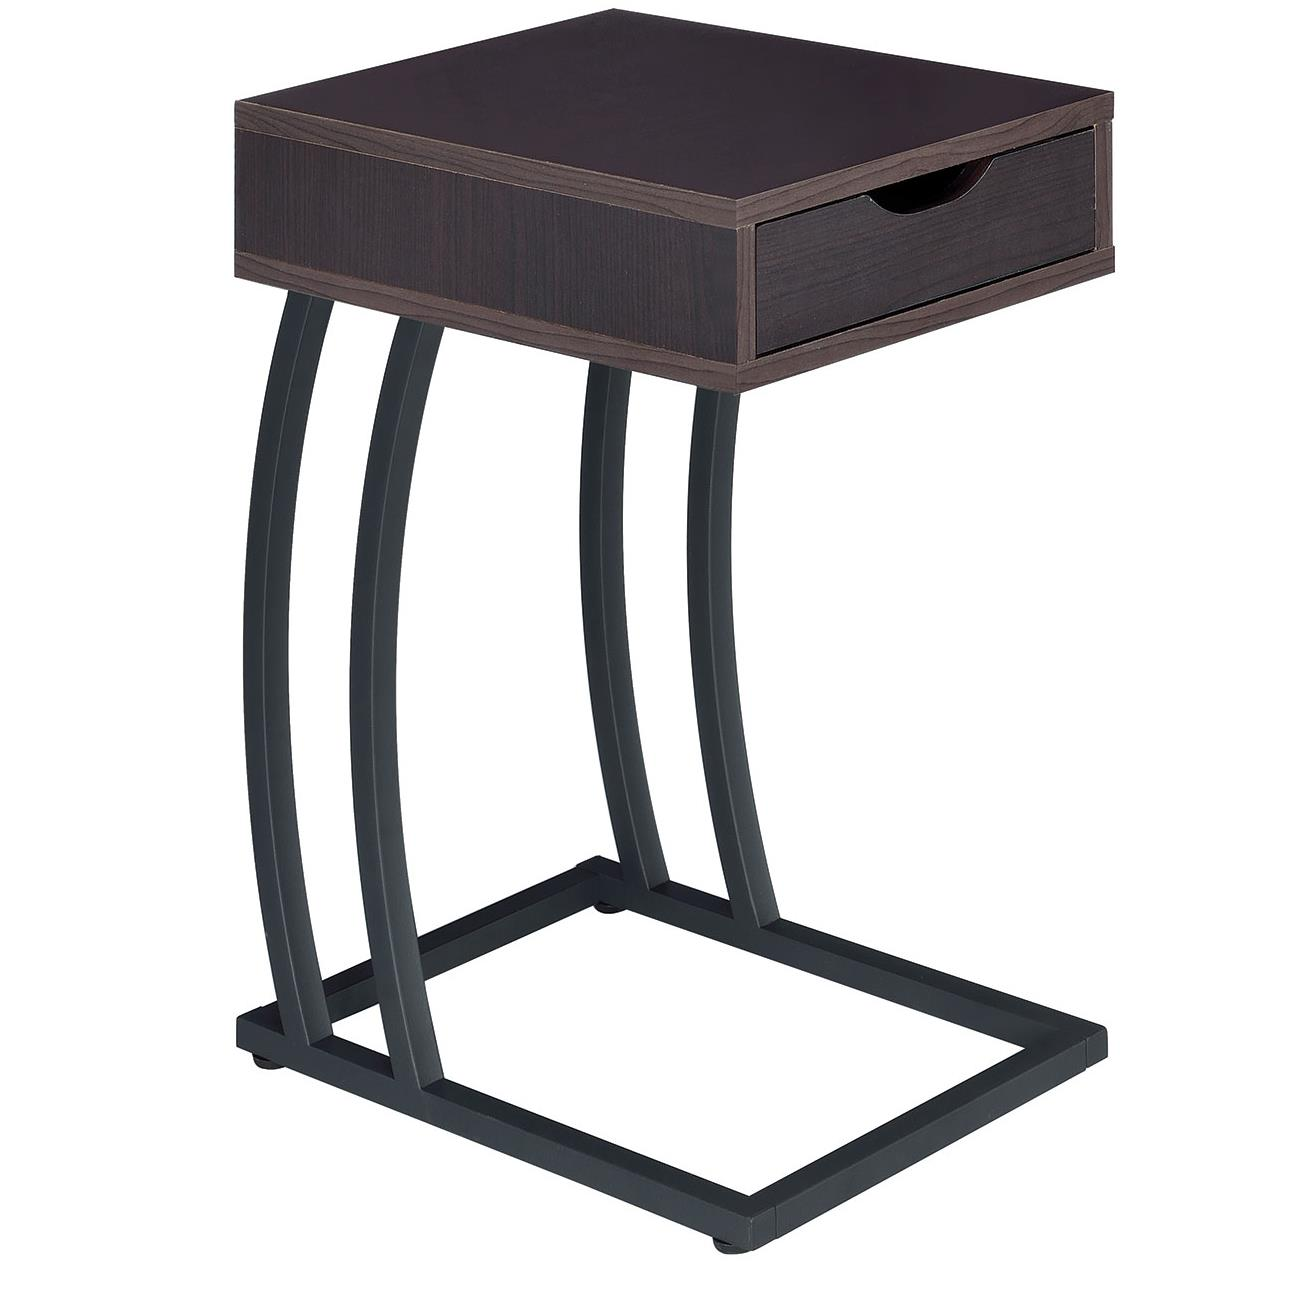 Coaster accent tables 900578 chairside table with storage for Bright colored side tables